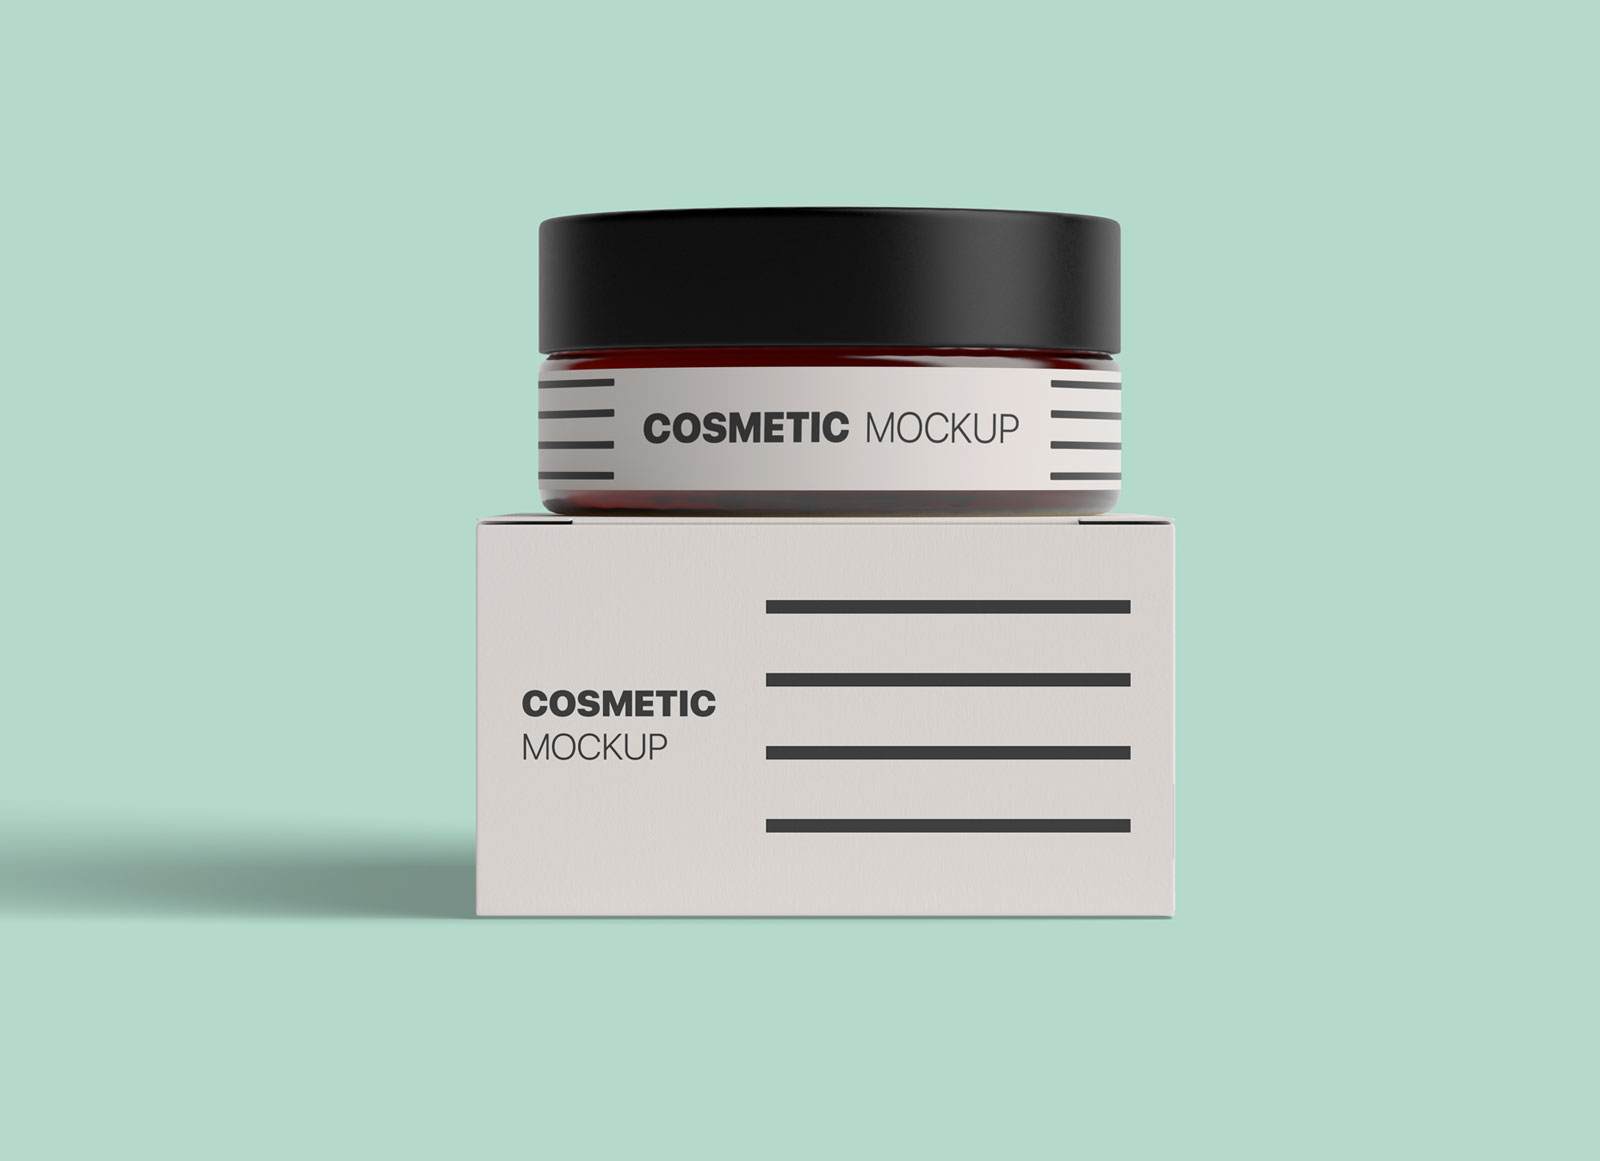 Free-Cosmetic-Bottle-&-Box-Packaging-Mockup